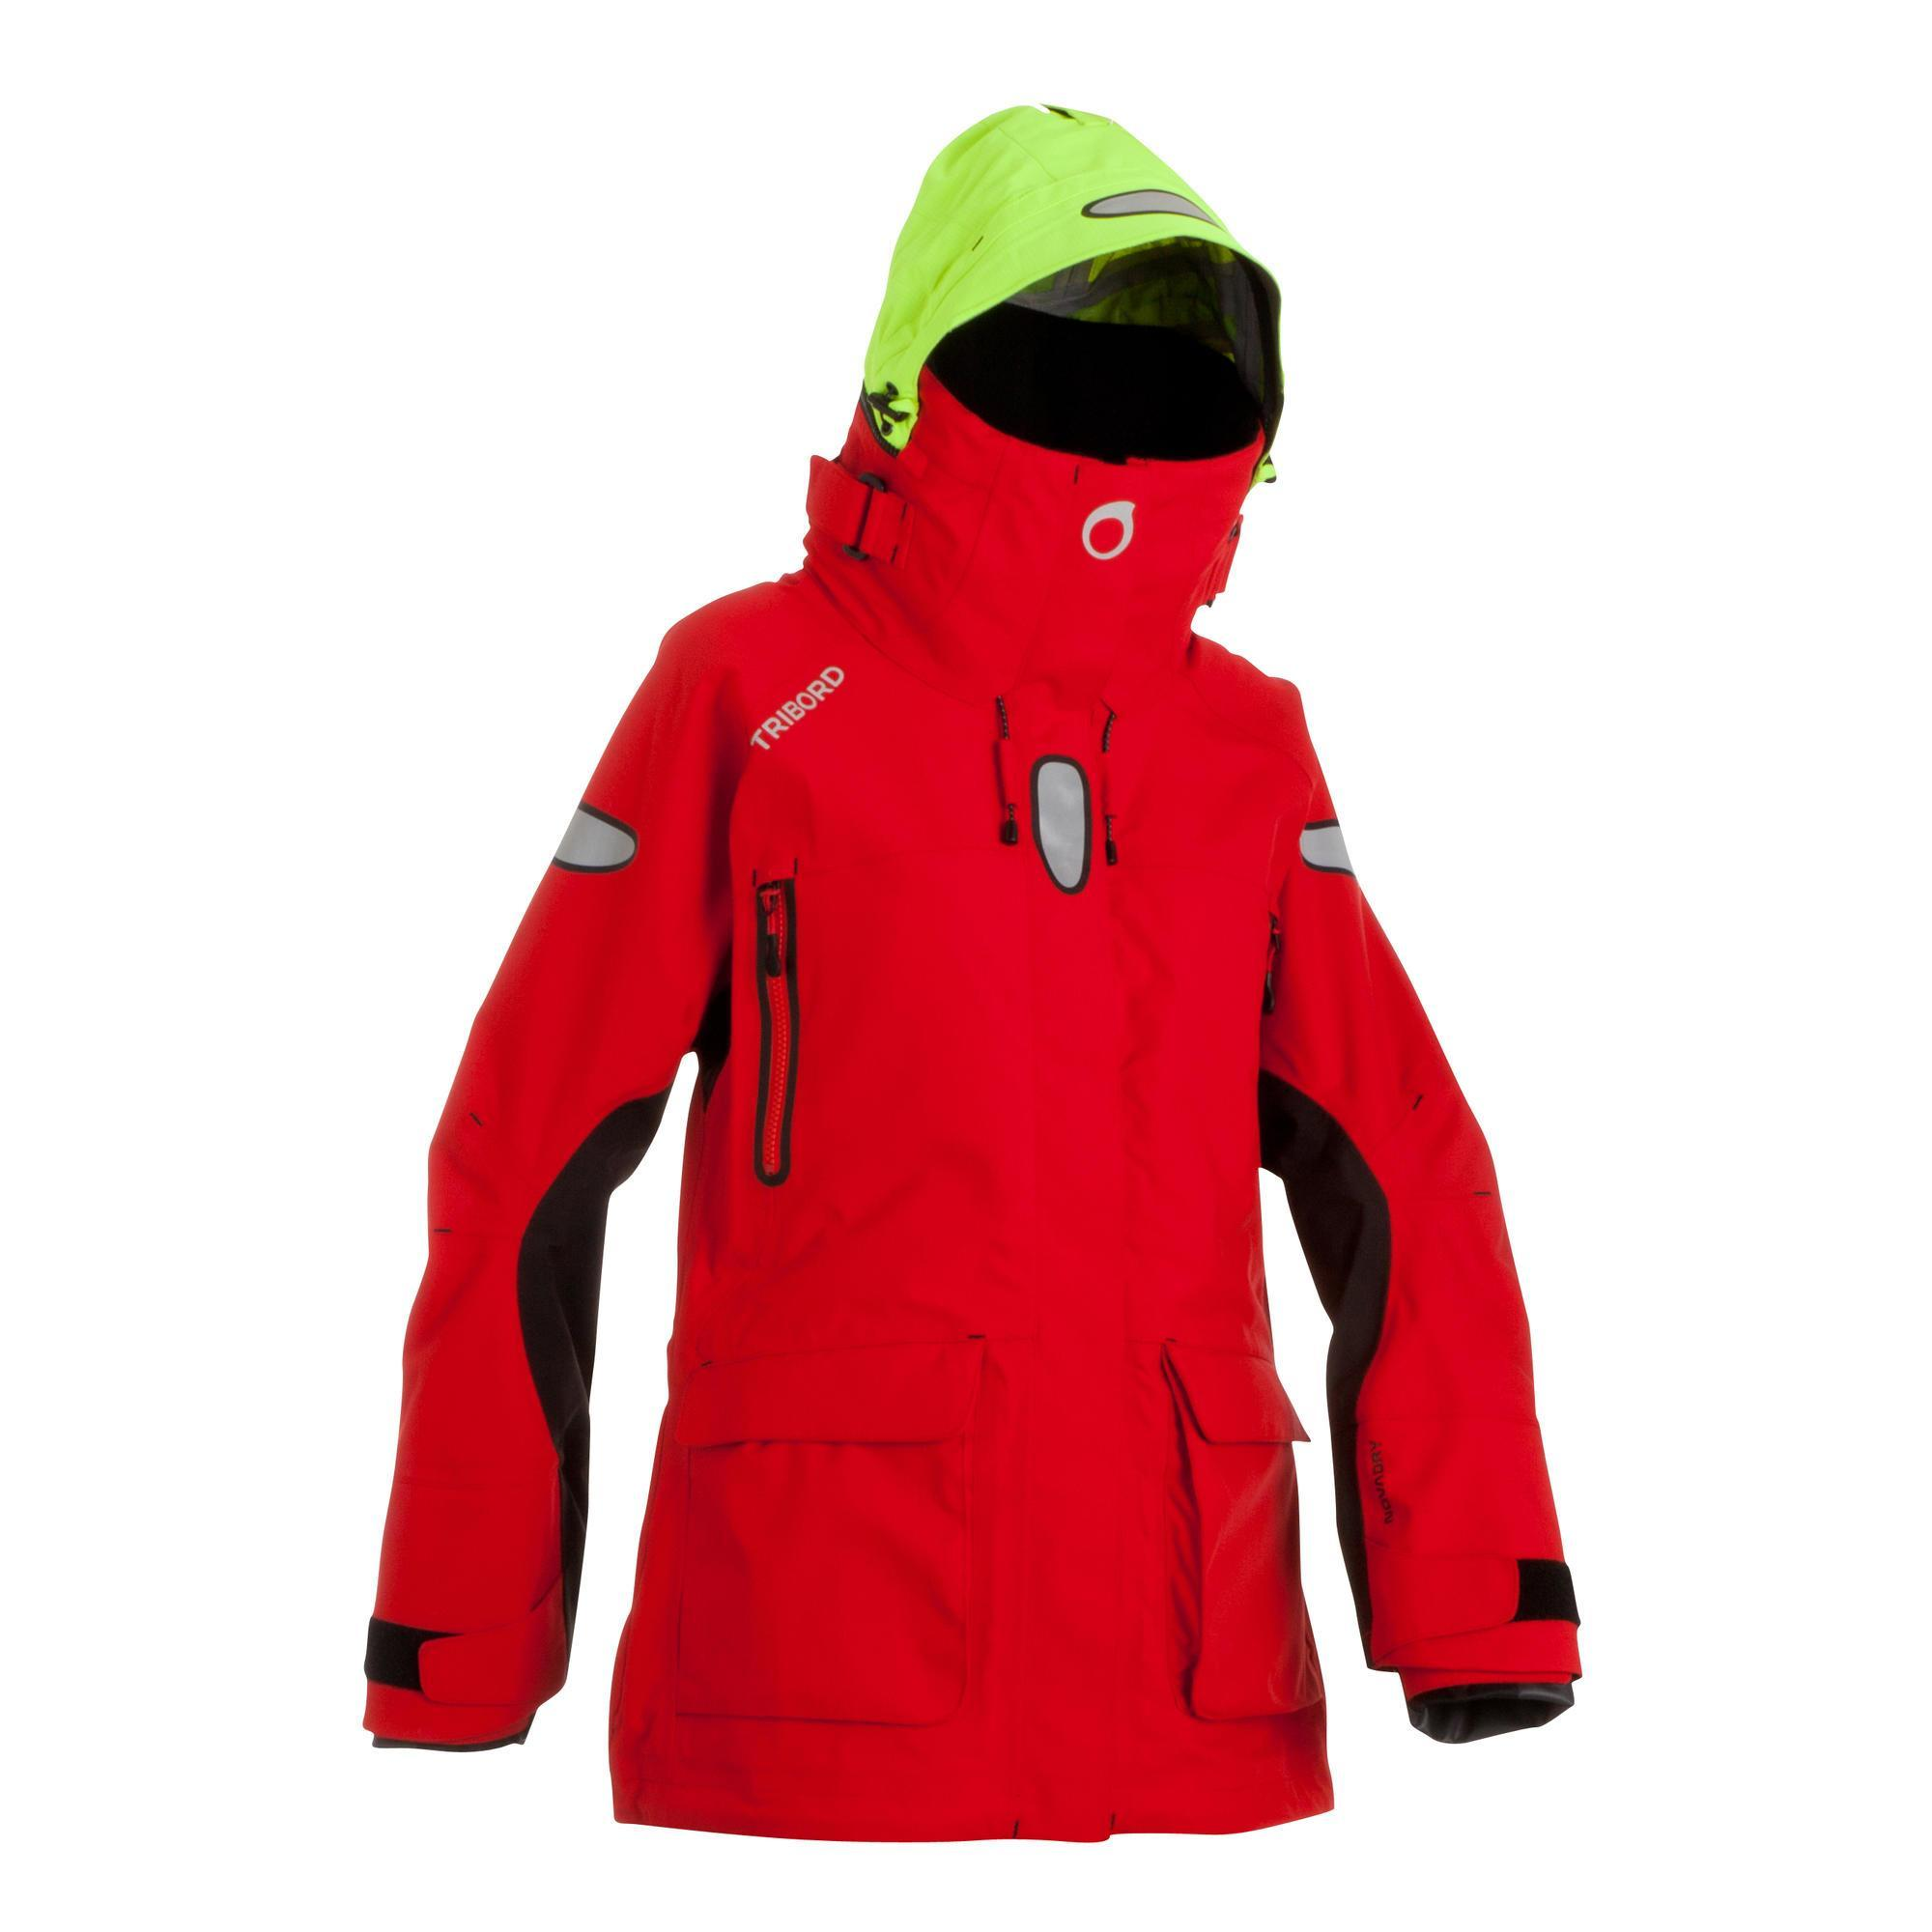 differently nice cheap shop best sellers Veste de quart imperméable femme OFFSHORE rouge